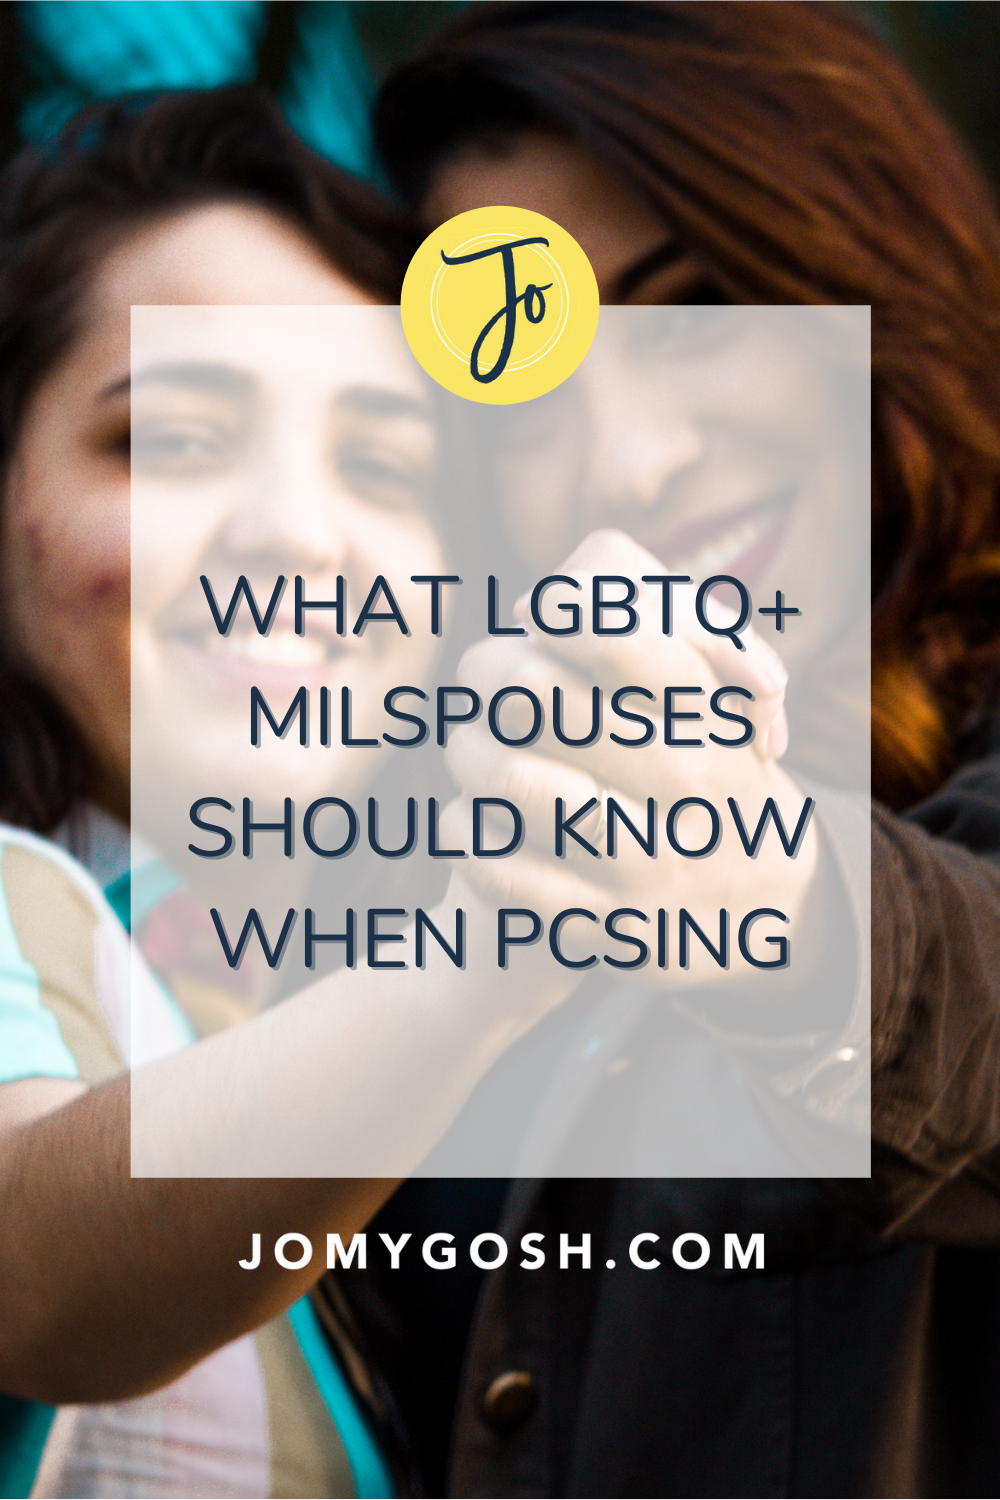 A military move can present challenges and opportunities for military spouses who identify as LGBTQ+. Here's what you should know before PCSing. #military #militaryspouse #milspouse #milso #milspo #milspouses #militaryspouses #milsos #milspos #lgbt #lgbtmilitary #lgbtq #army #airforce #navy #marines #coastguard